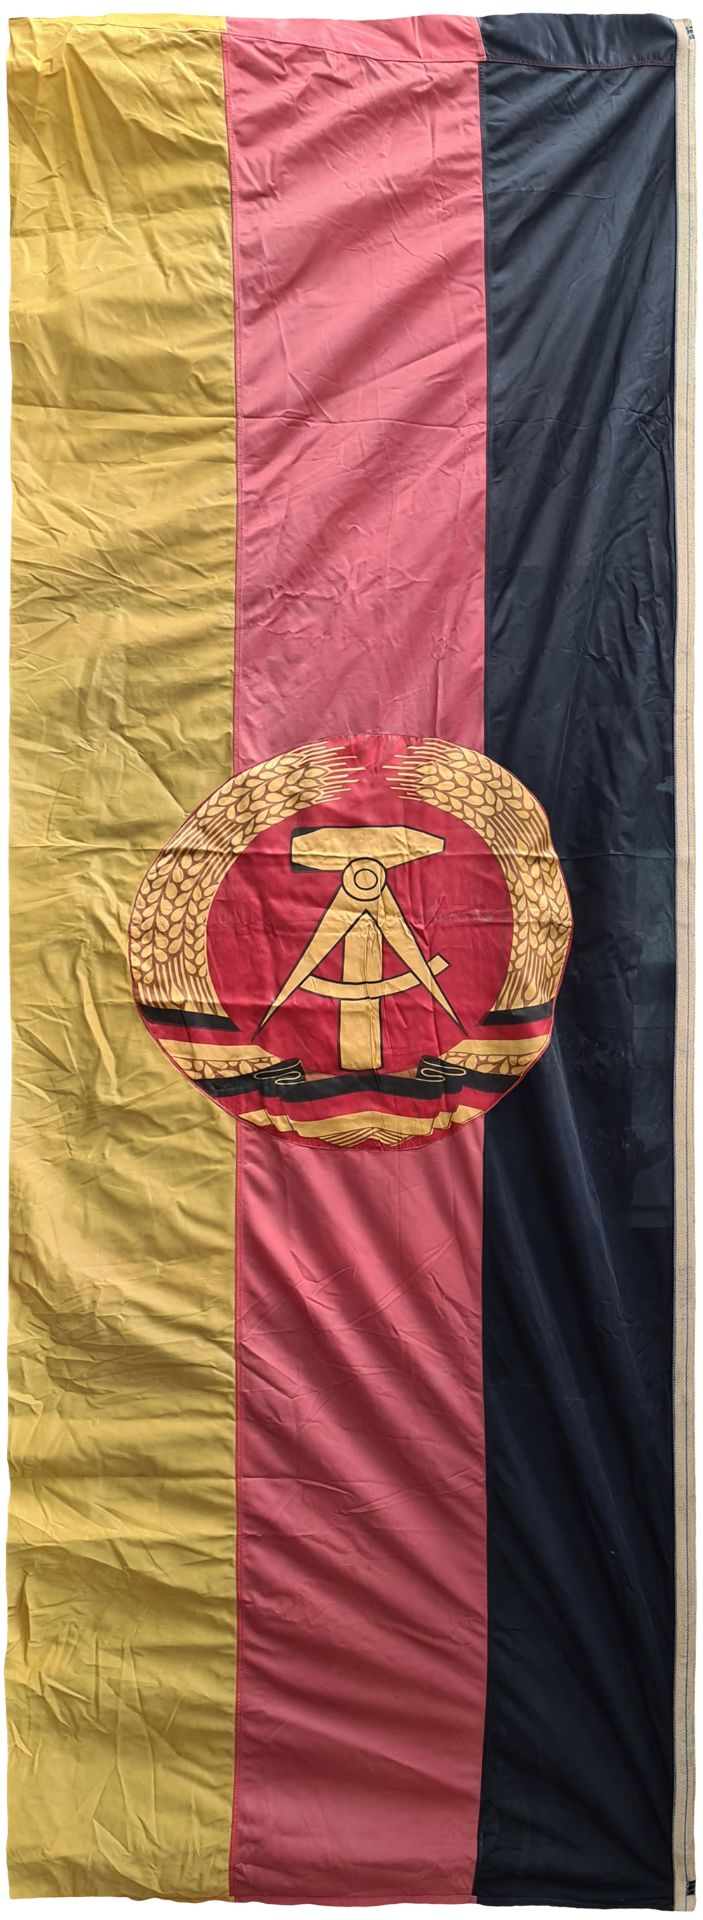 Large flag of DDR, East Germany , Banner about 1970 year - Bild 2 aus 2